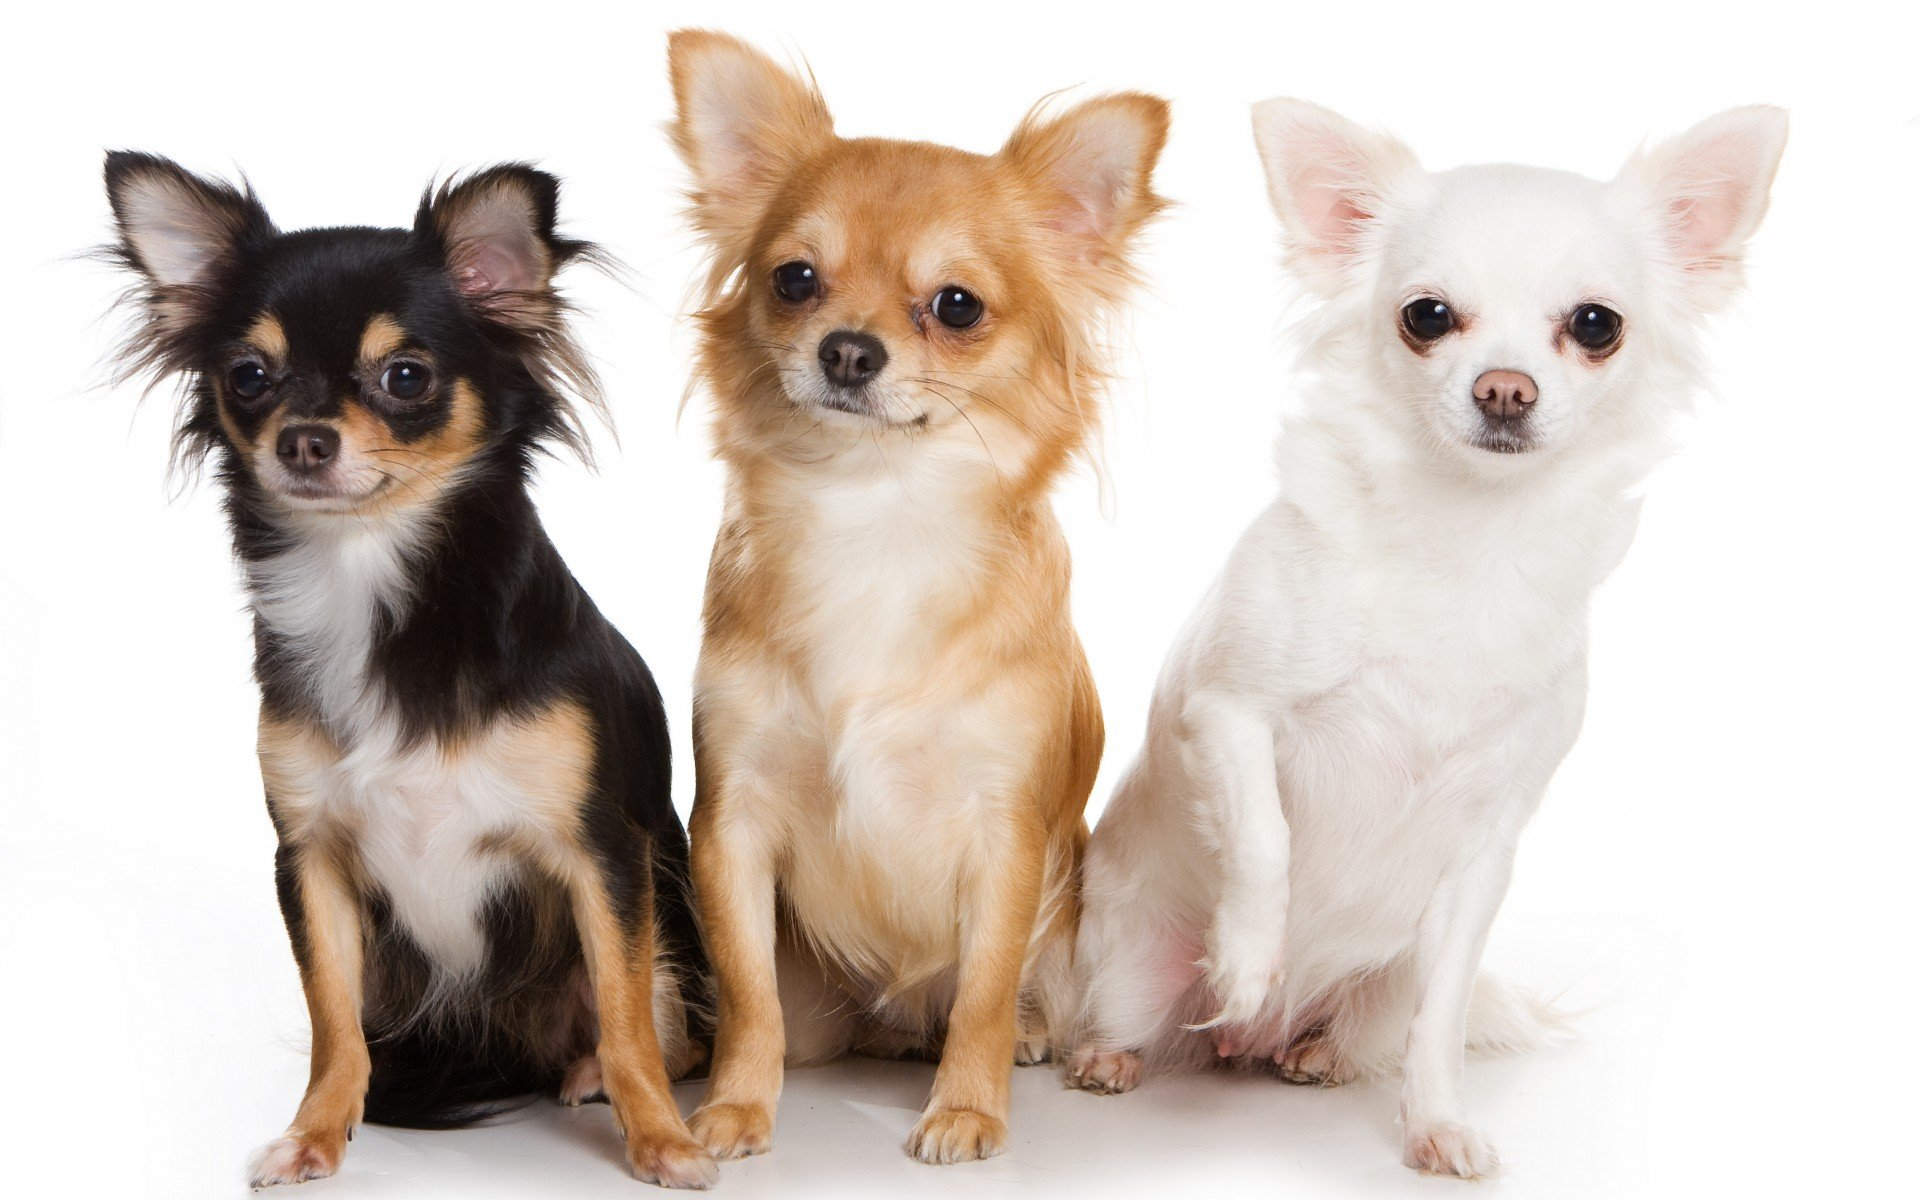 Chihuahua dog dogs wallpaper 1920x1200 520444 wallpaperup voltagebd Images